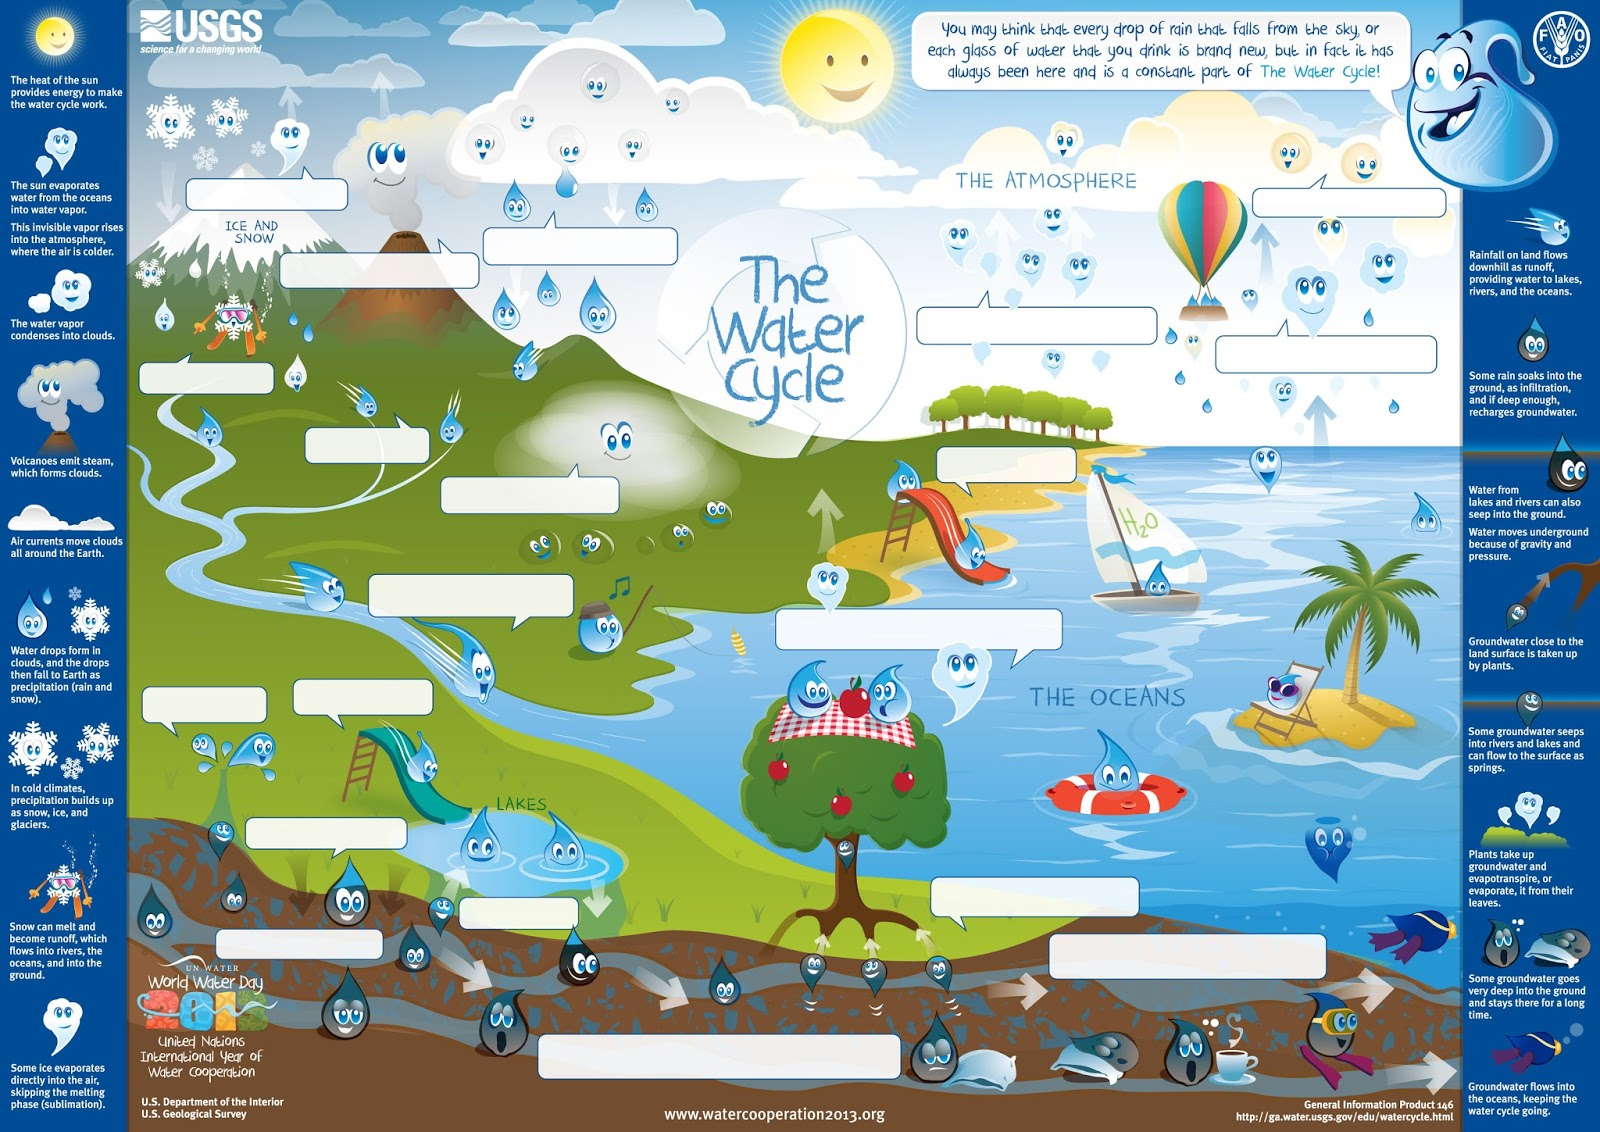 Lets talk about science the water cycle fill the gaps in this diagram with the processes of the water cycle you can download the diagram from here ccuart Image collections